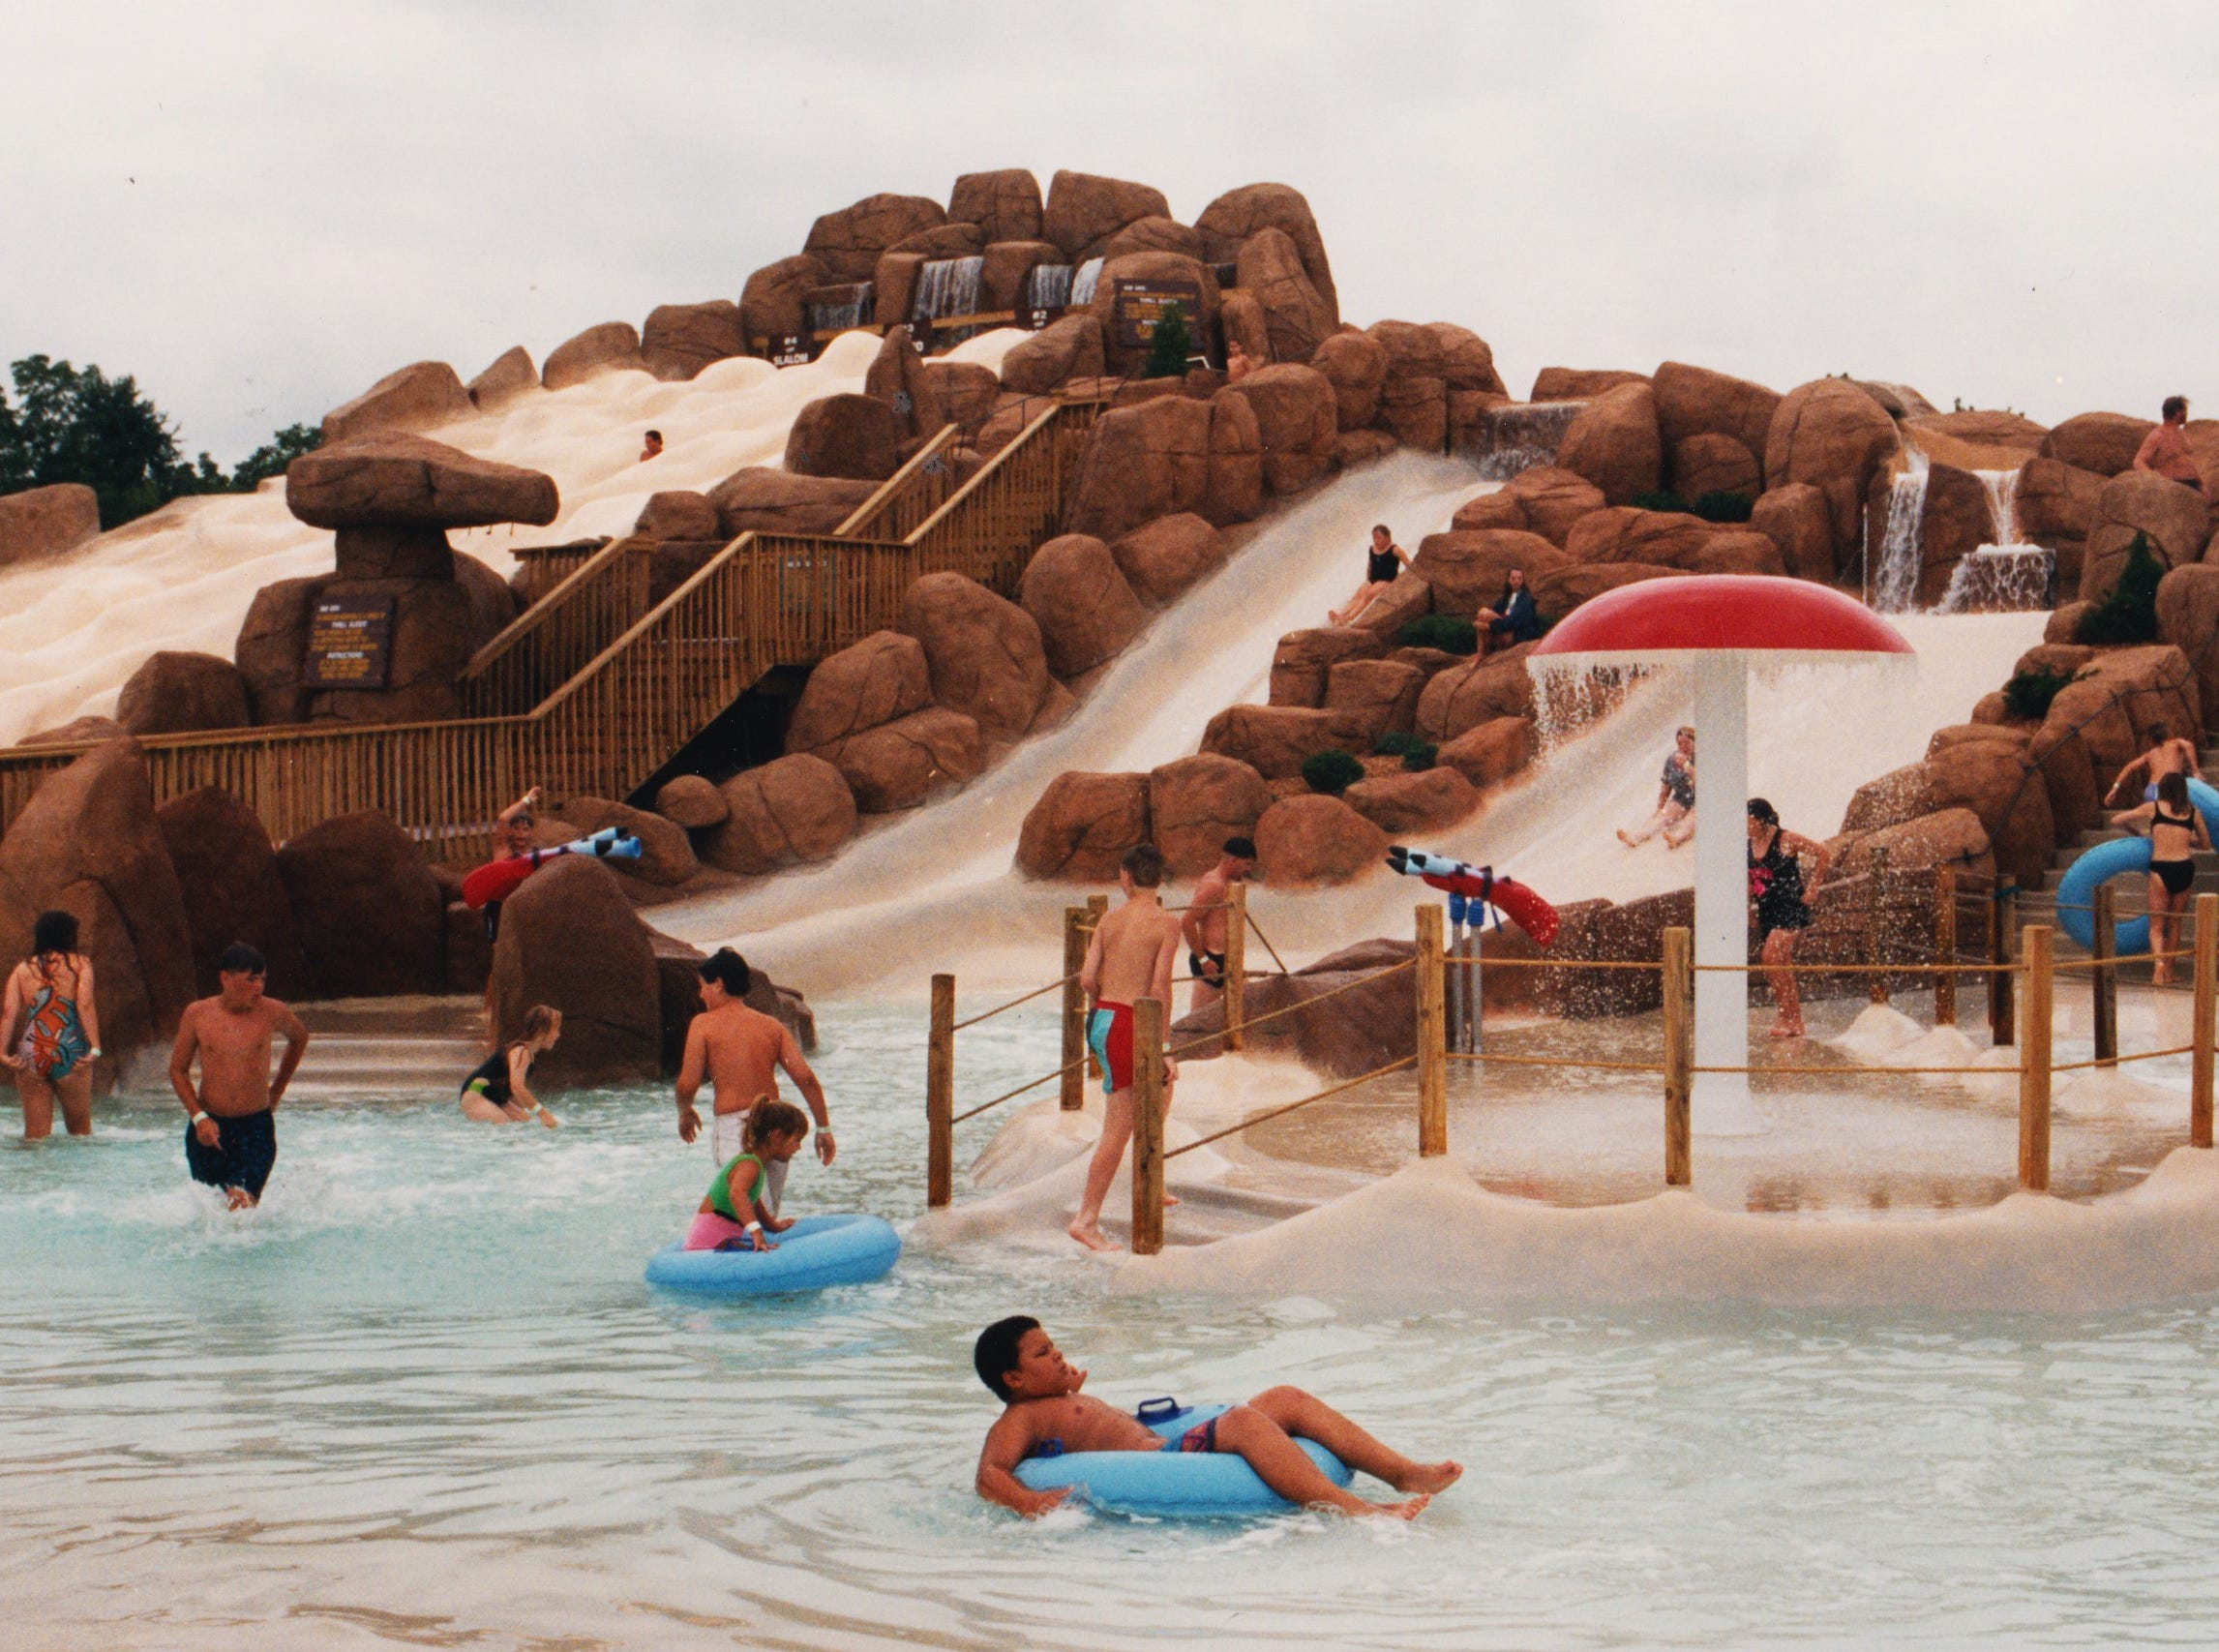 Splashdown Mountain, which opened in 1994, featured almost a dozen different water slides.